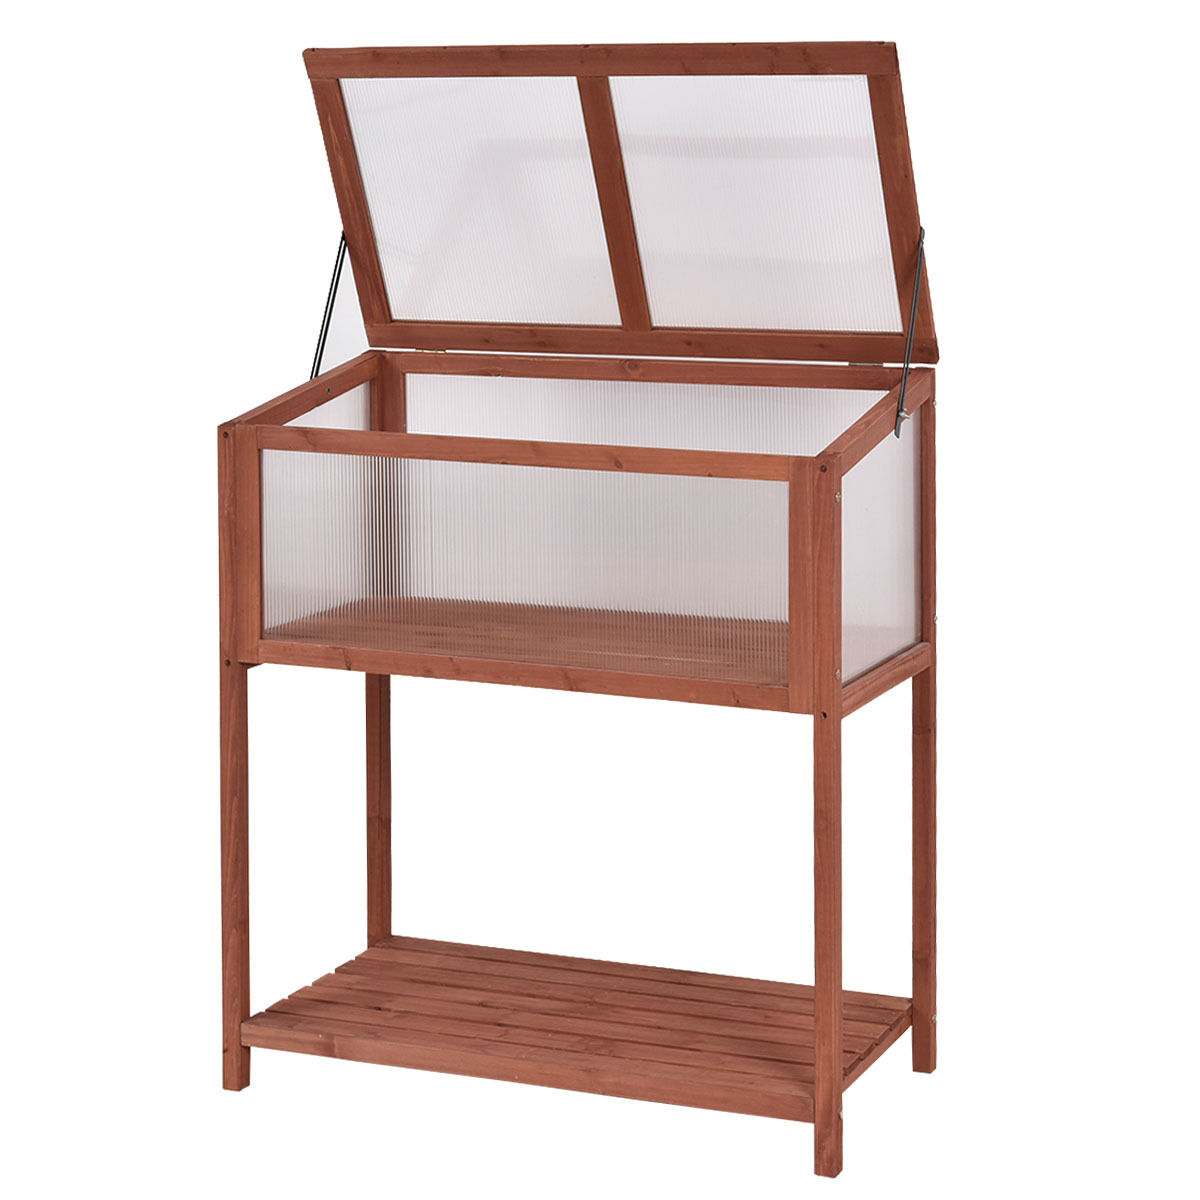 "GHP Outdoor 35.4""Lx19.3""Wx40.5""H Solid Fir Wooden Greenhouse/Planter w Storage Shelf"